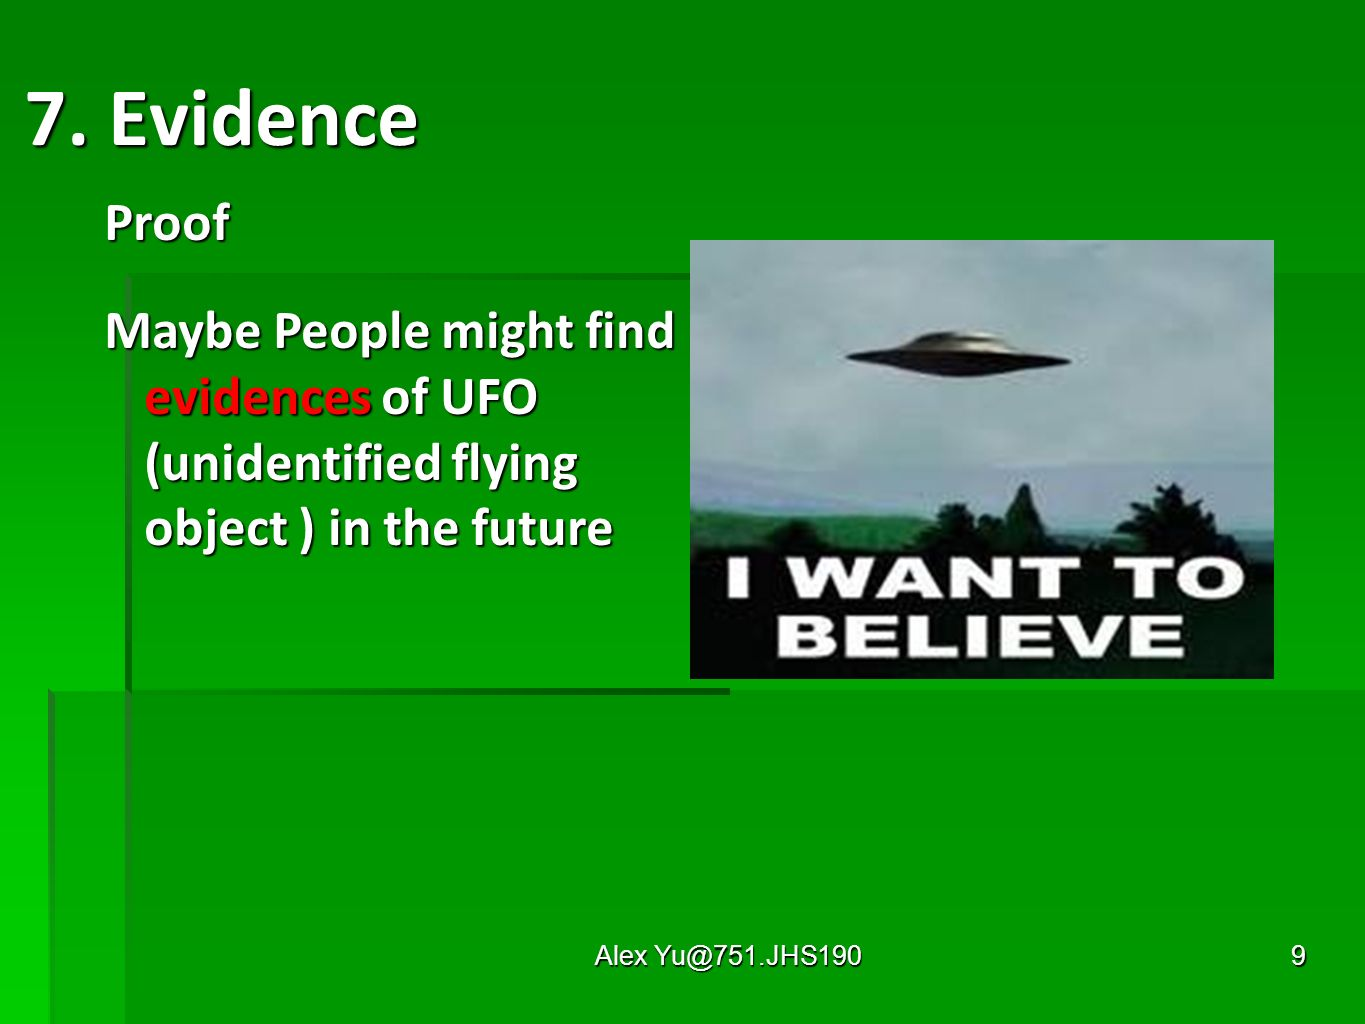 Alex Yu@751.JHS1909 7. Evidence Proof Maybe People might find evidences of UFO (unidentified flying object ) in the future